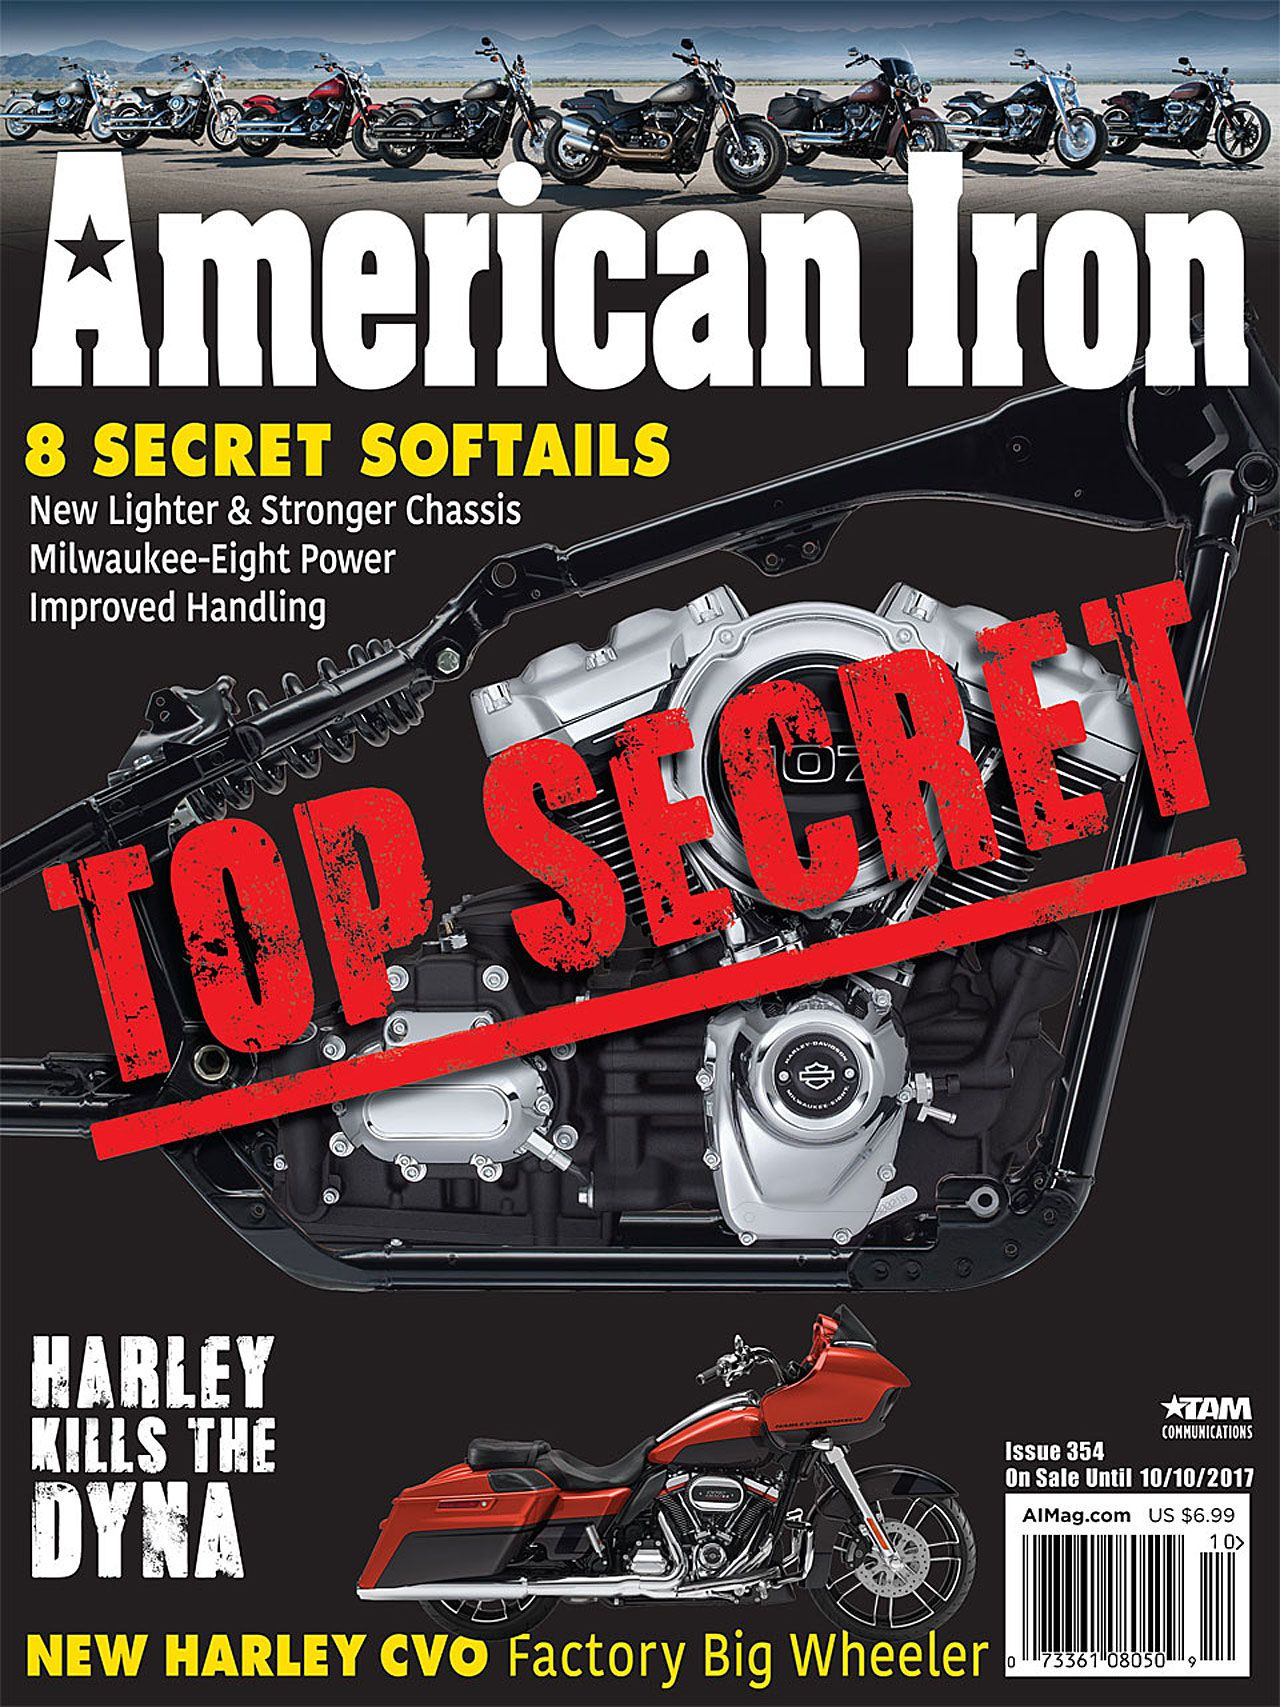 American Iron Magazine Ceases Publication